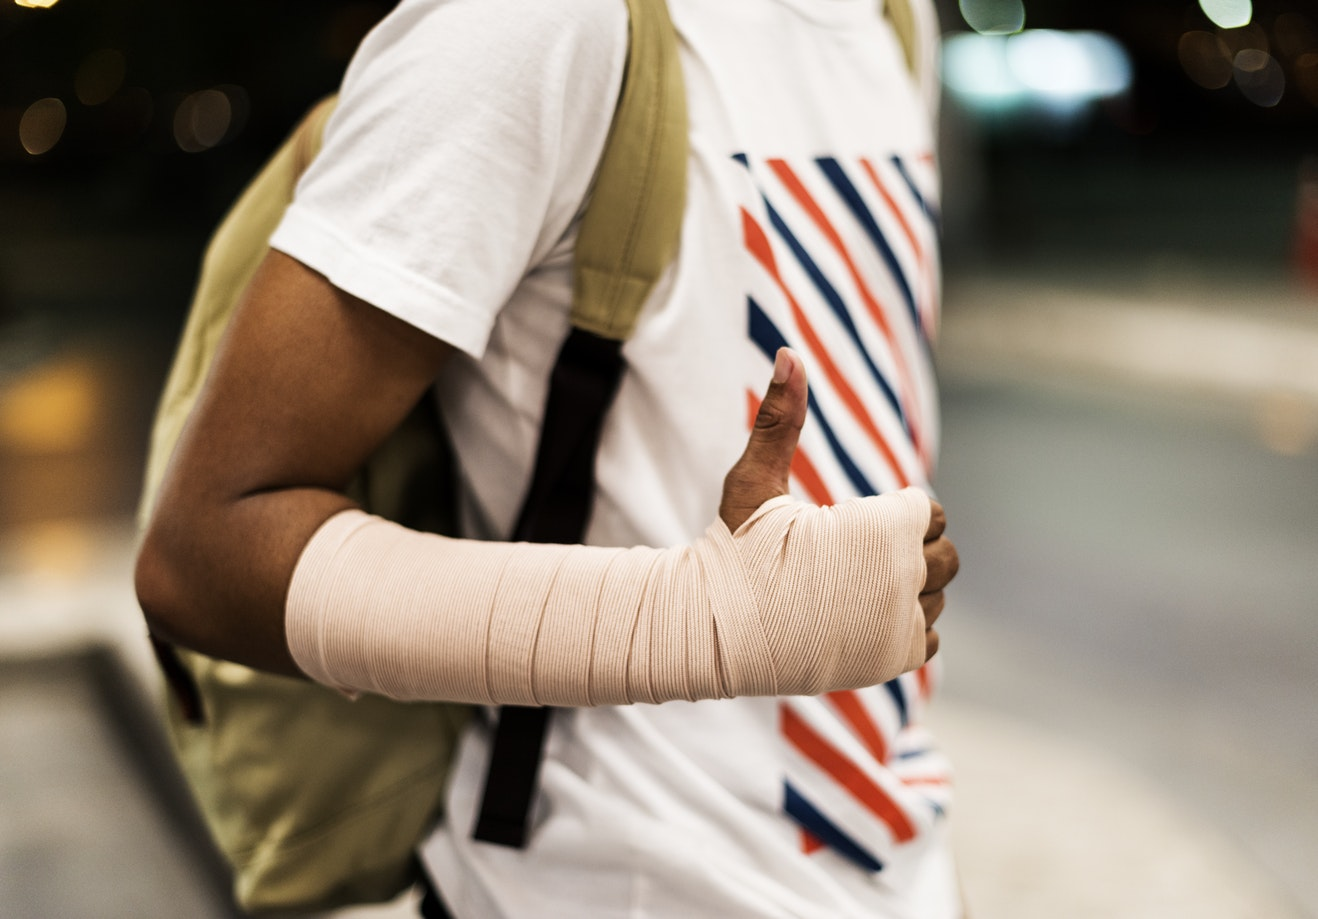 Accident & Injury Insurance Cover